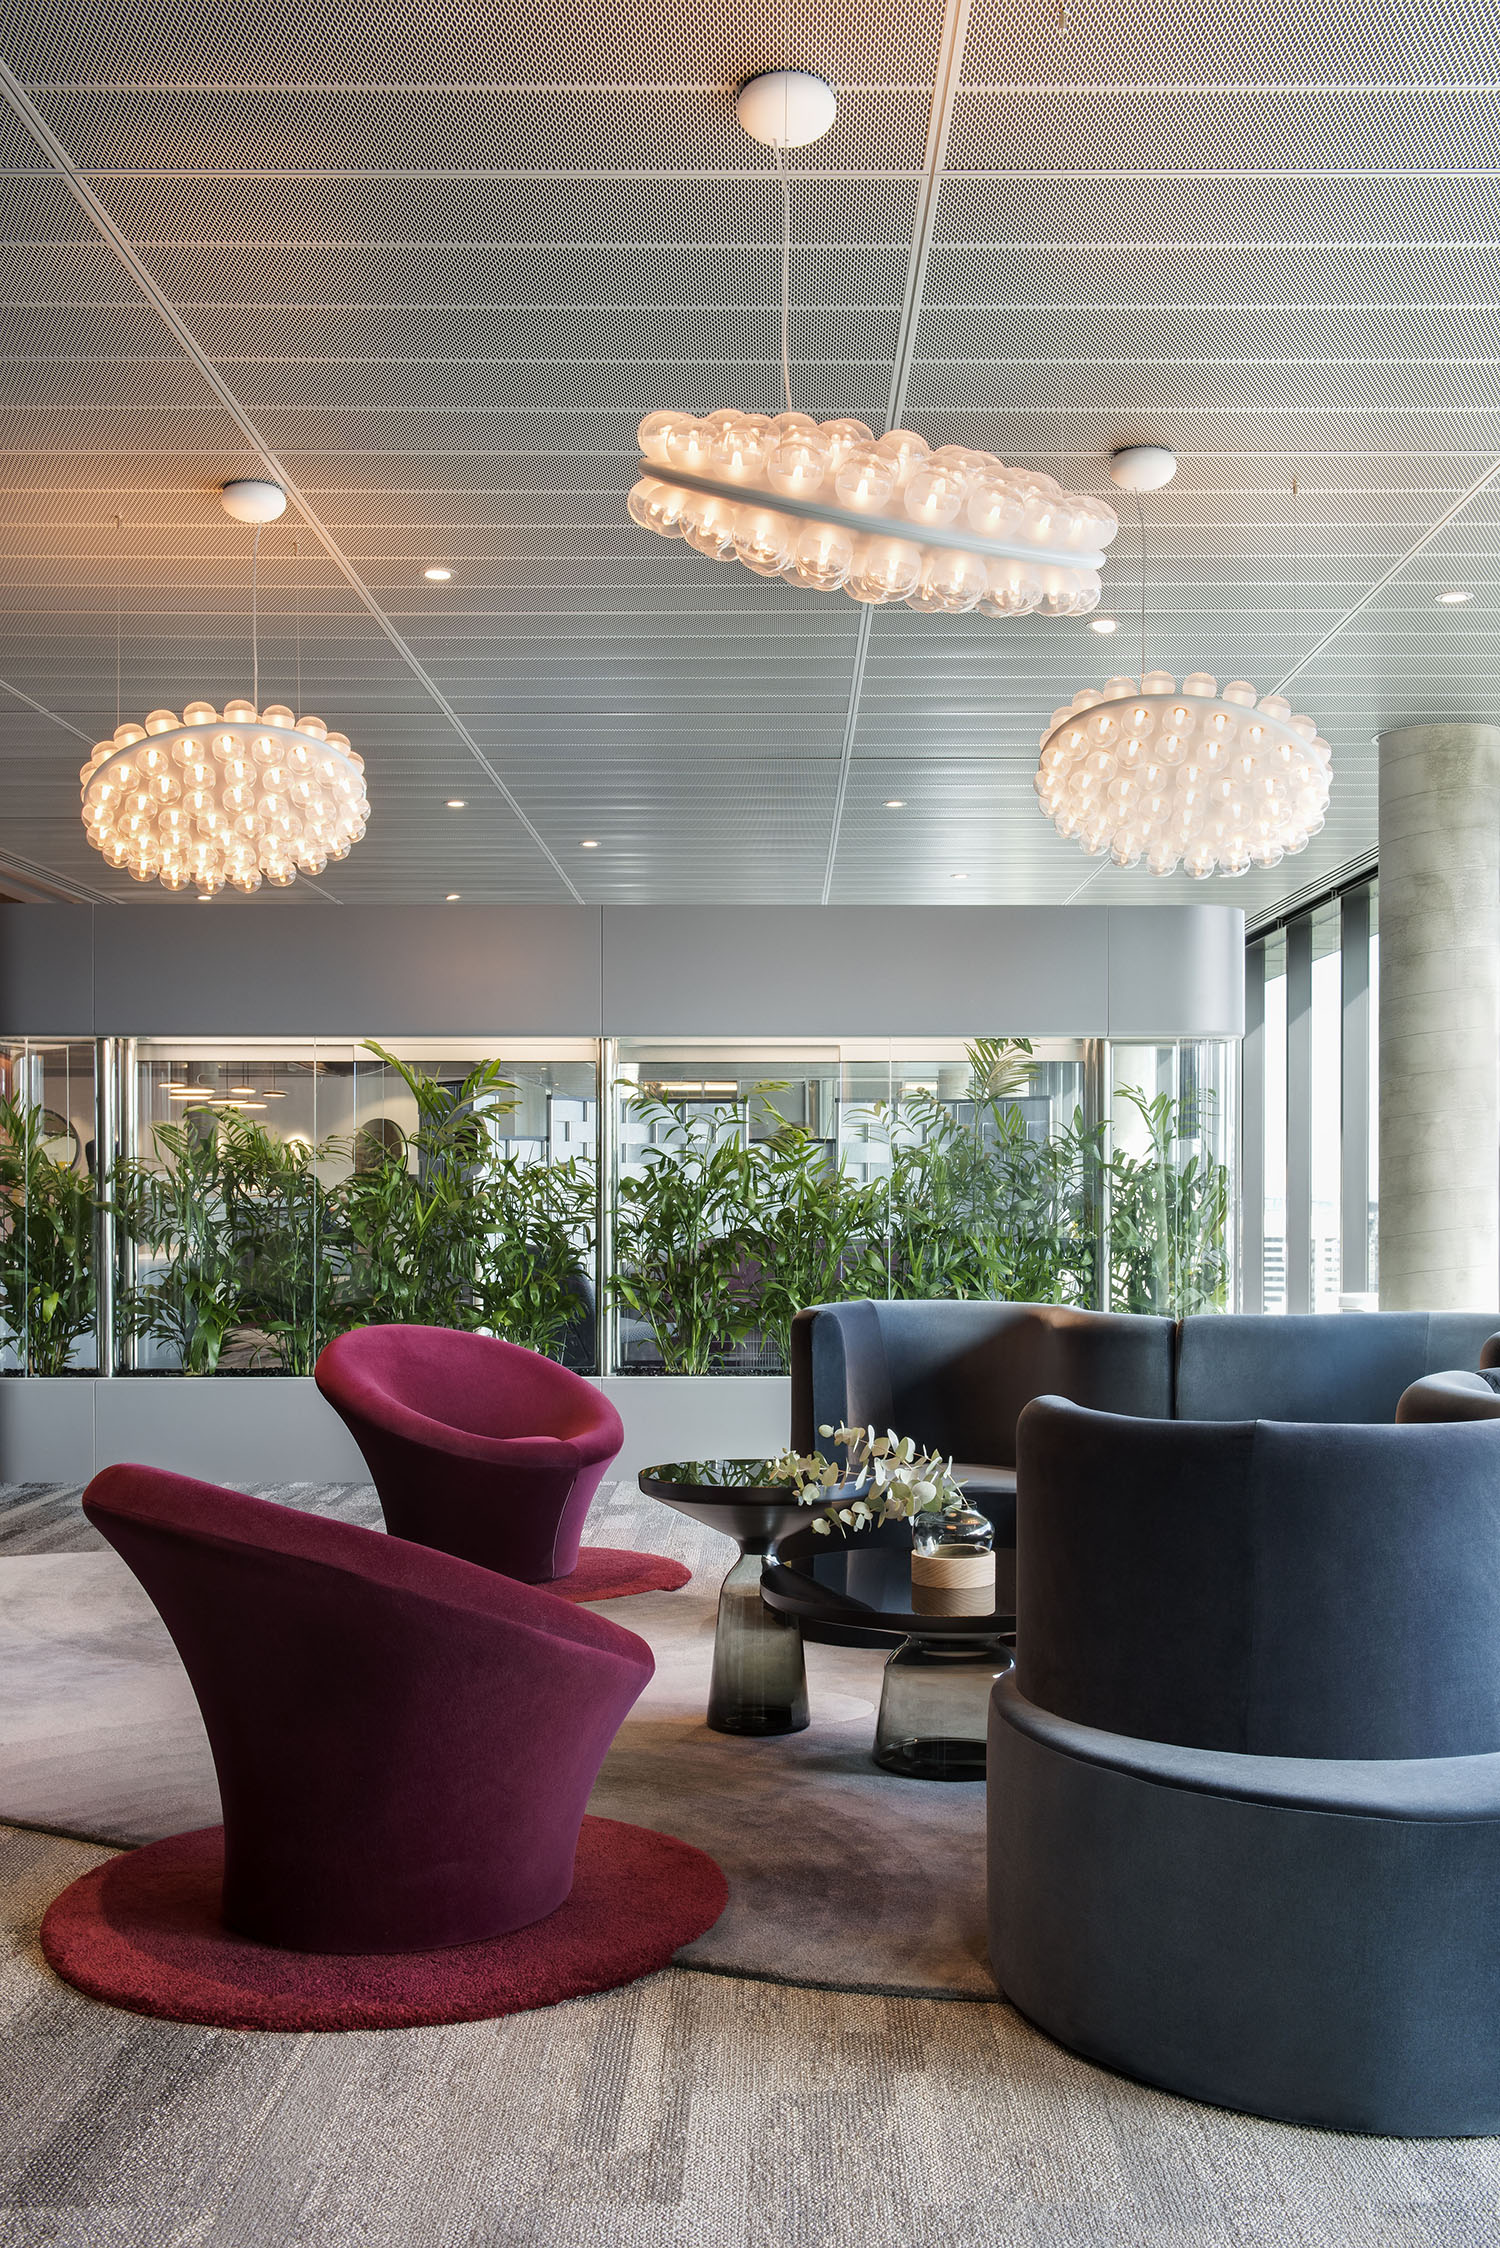 Project Title: PwC Melbourne Client Collaboration Floors by Futurespace Image Credits: Nicole England